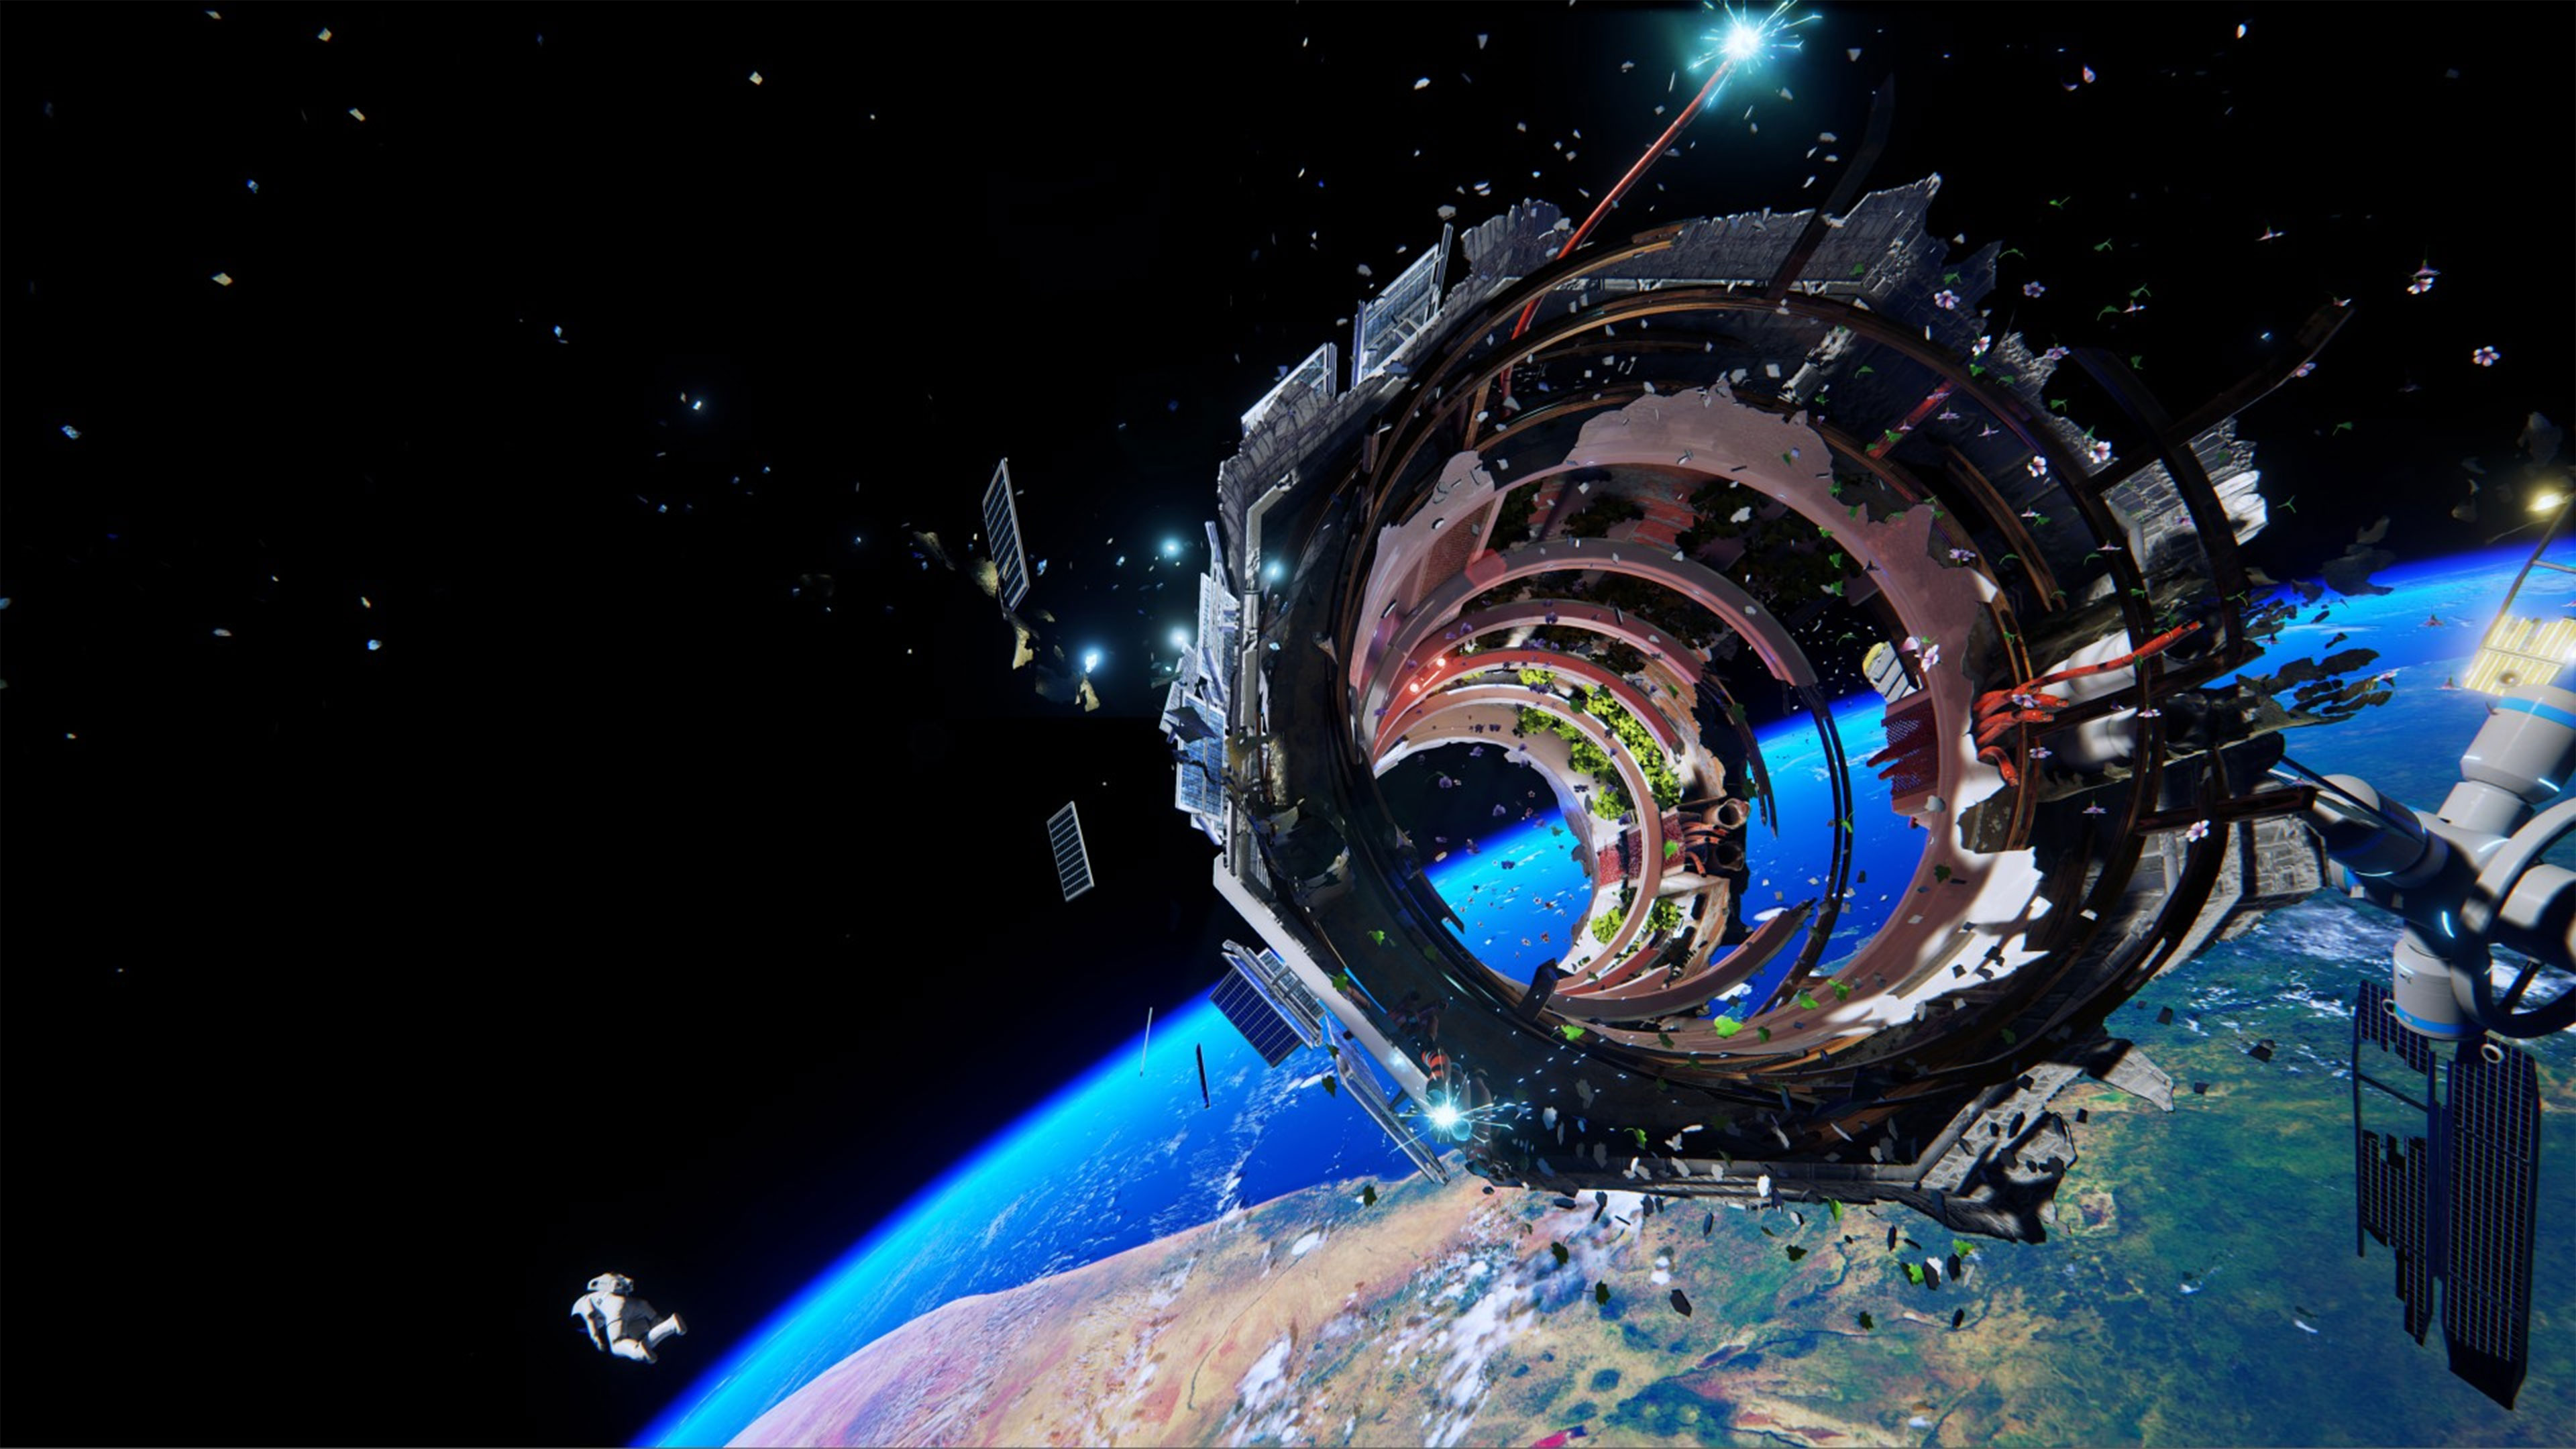 4k Hd Wallapaper: Adr1ft Wallpapers In Ultra HD